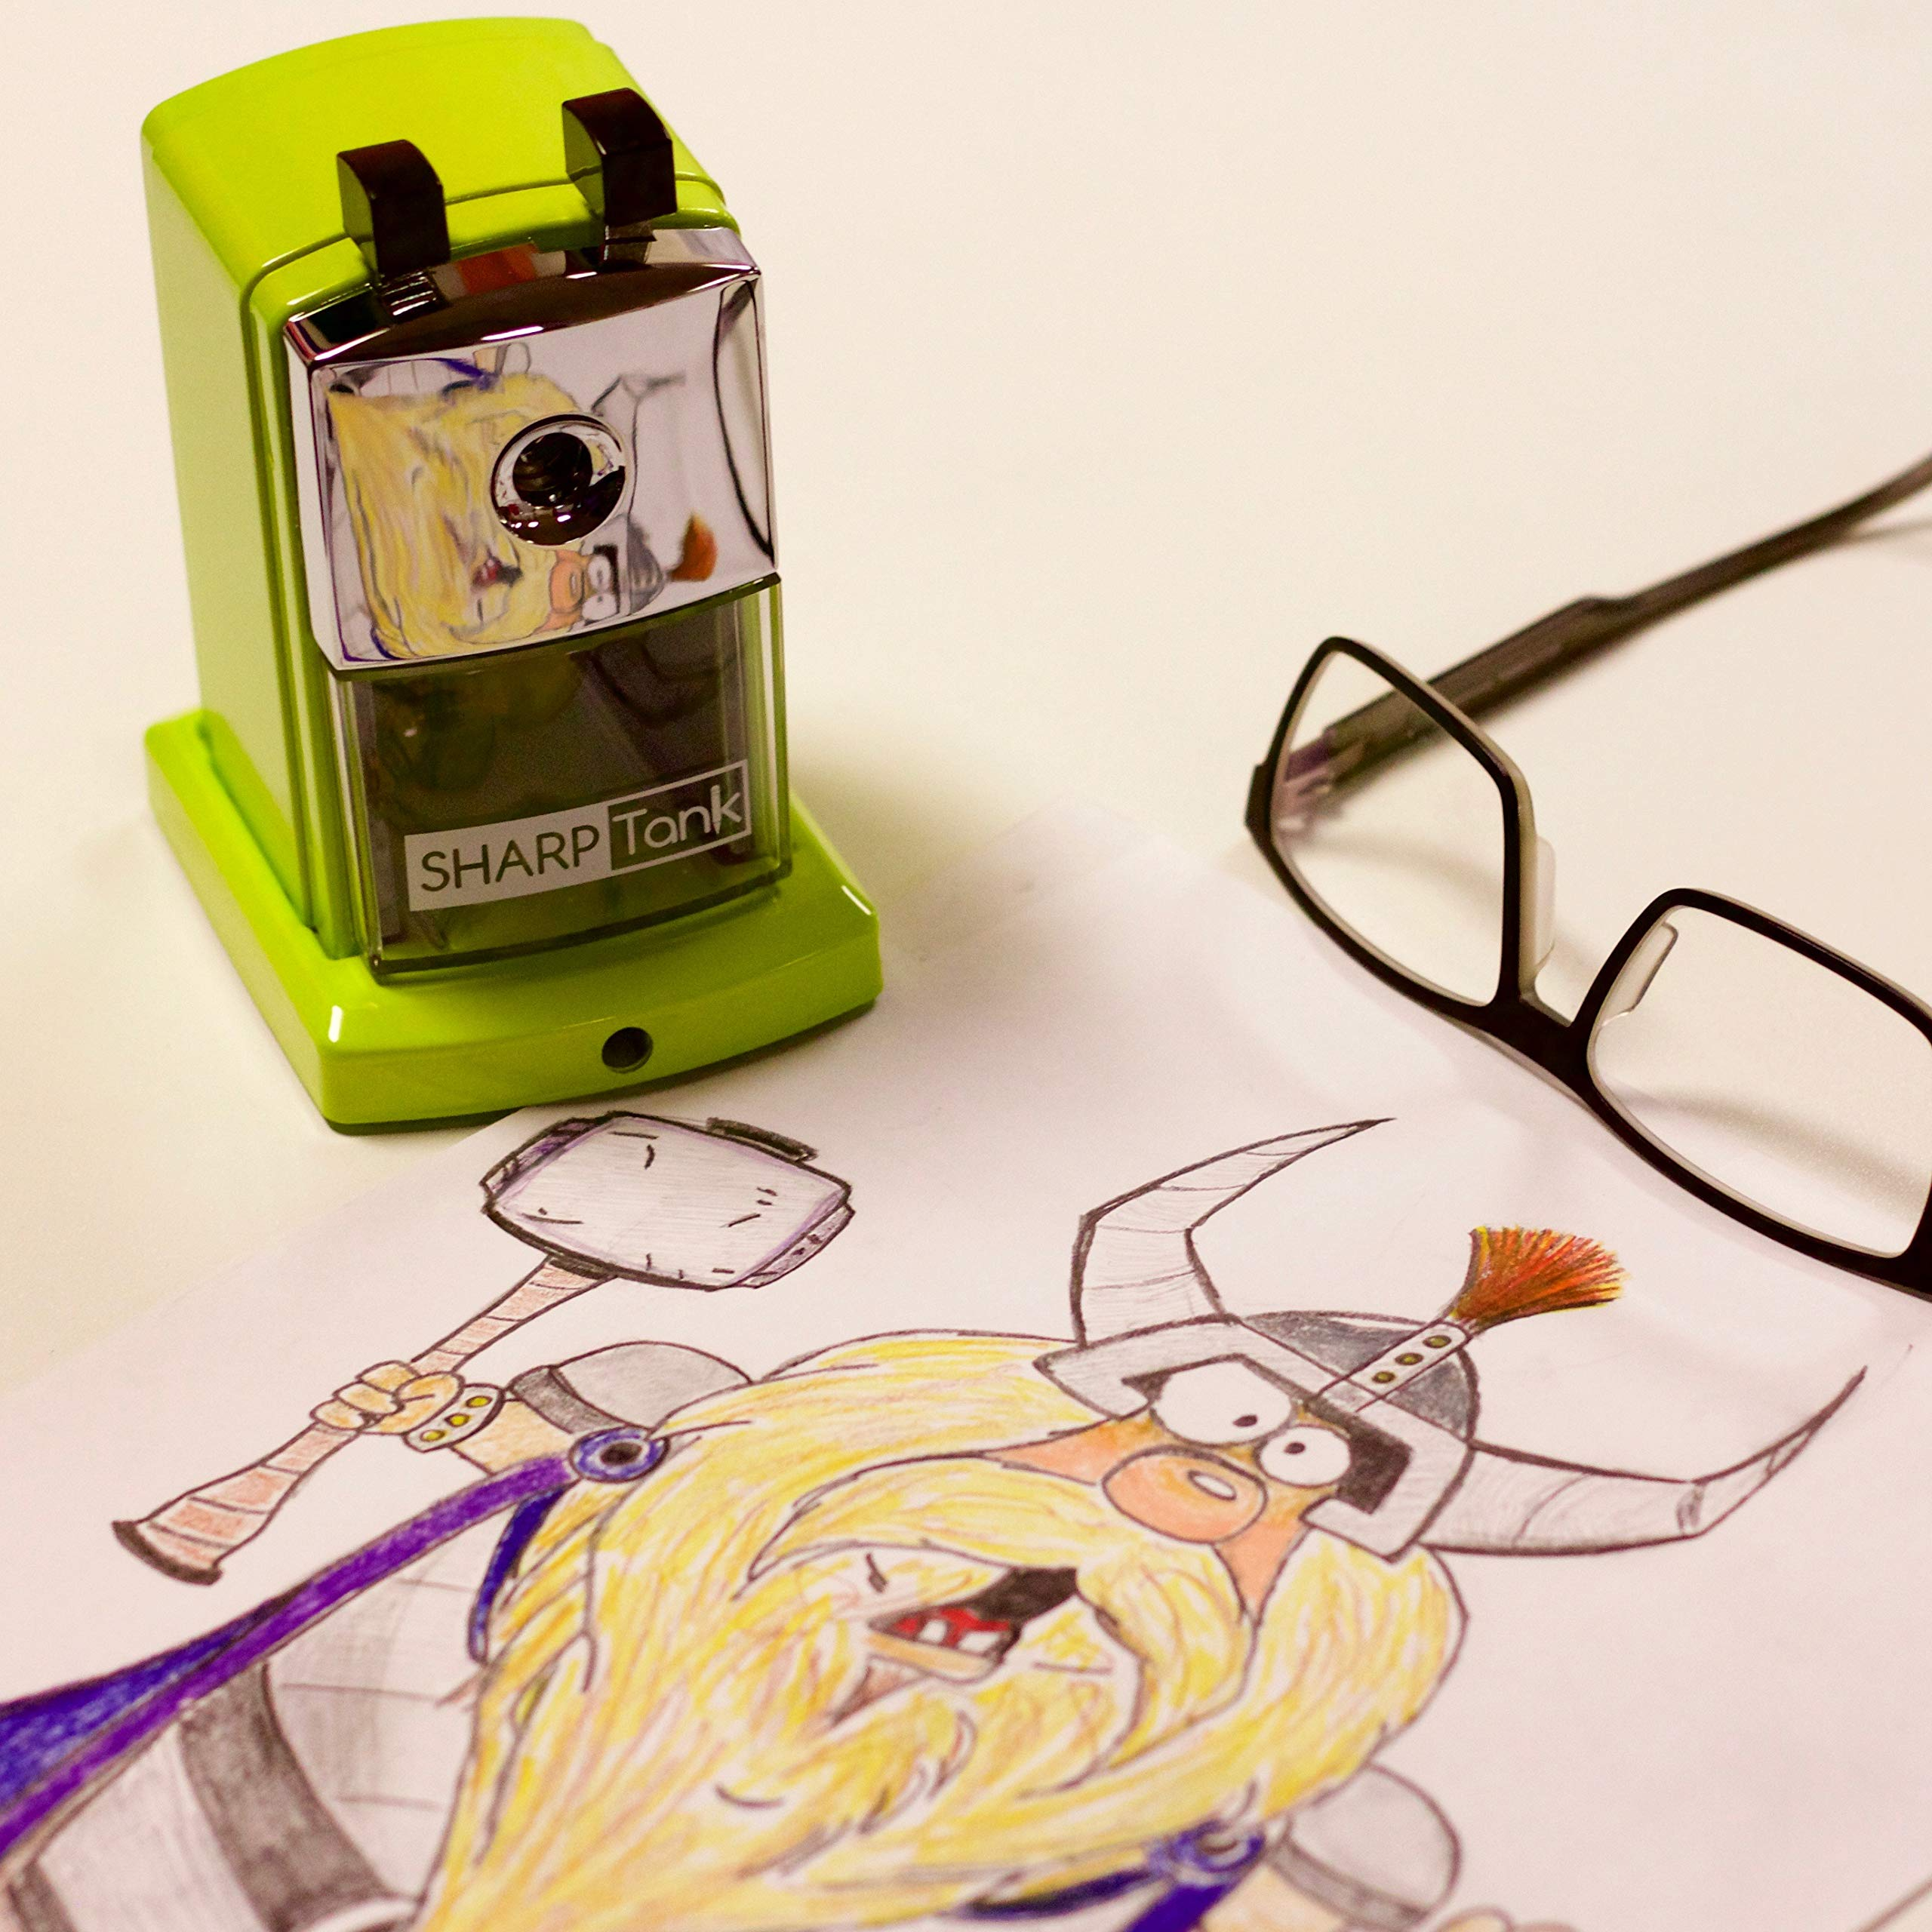 SharpTank - Portable Pencil Sharpener (Key Lime Green) - Compact & Quiet Classroom Sharpener That Gets Straight to The Point! by SHARP TANK (Image #4)